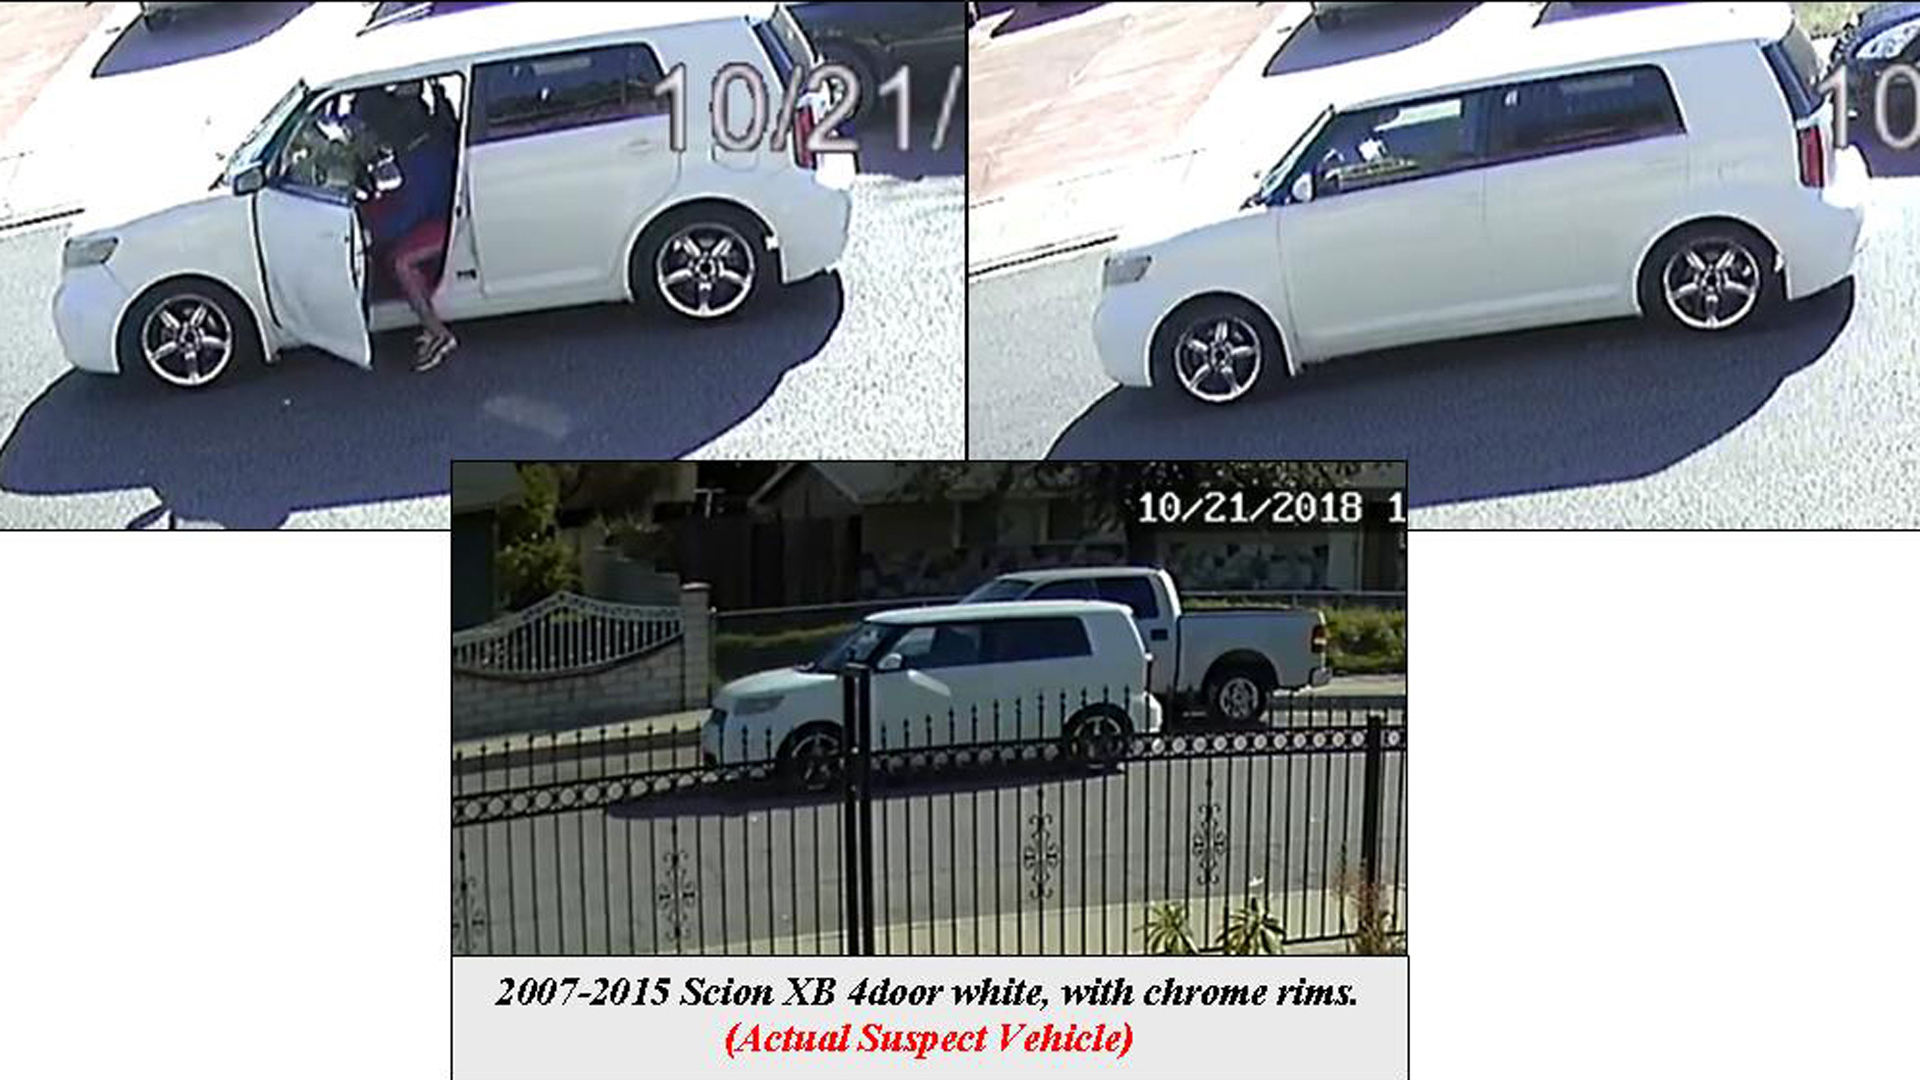 Pomona police are seeking the white, four-door, Scion xB with chrome rims pictured in this security camera image, along with three suspects, in connection with a shooting that left a young boy wounded in Pomona on Oct. 21, 2018.